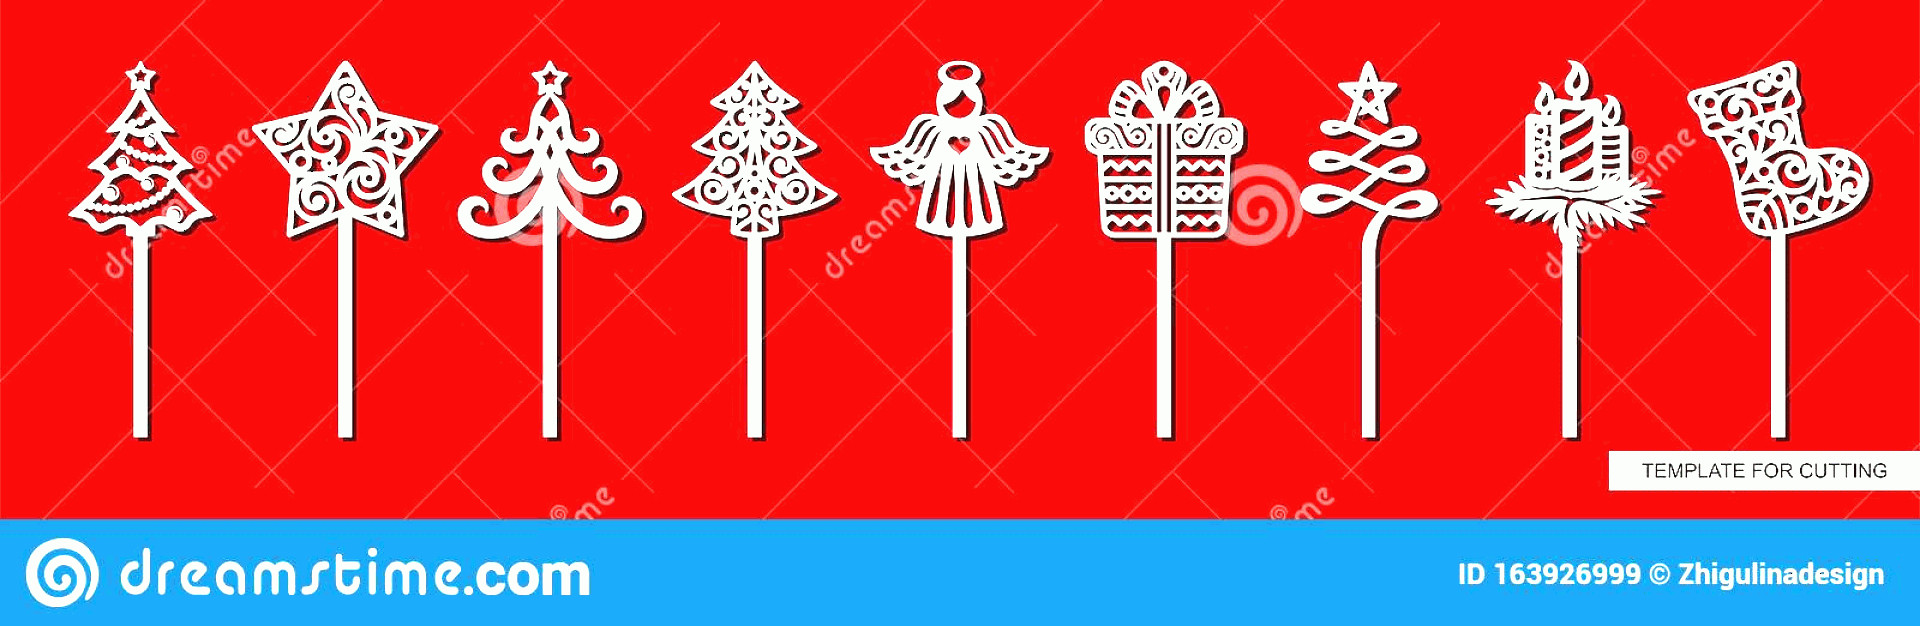 Vector Christmas Toppers: Template Laser Cutting Wood Carving Paper Cut Printing Vector Illustration Set New Years Decorations Toppers Cakes Image